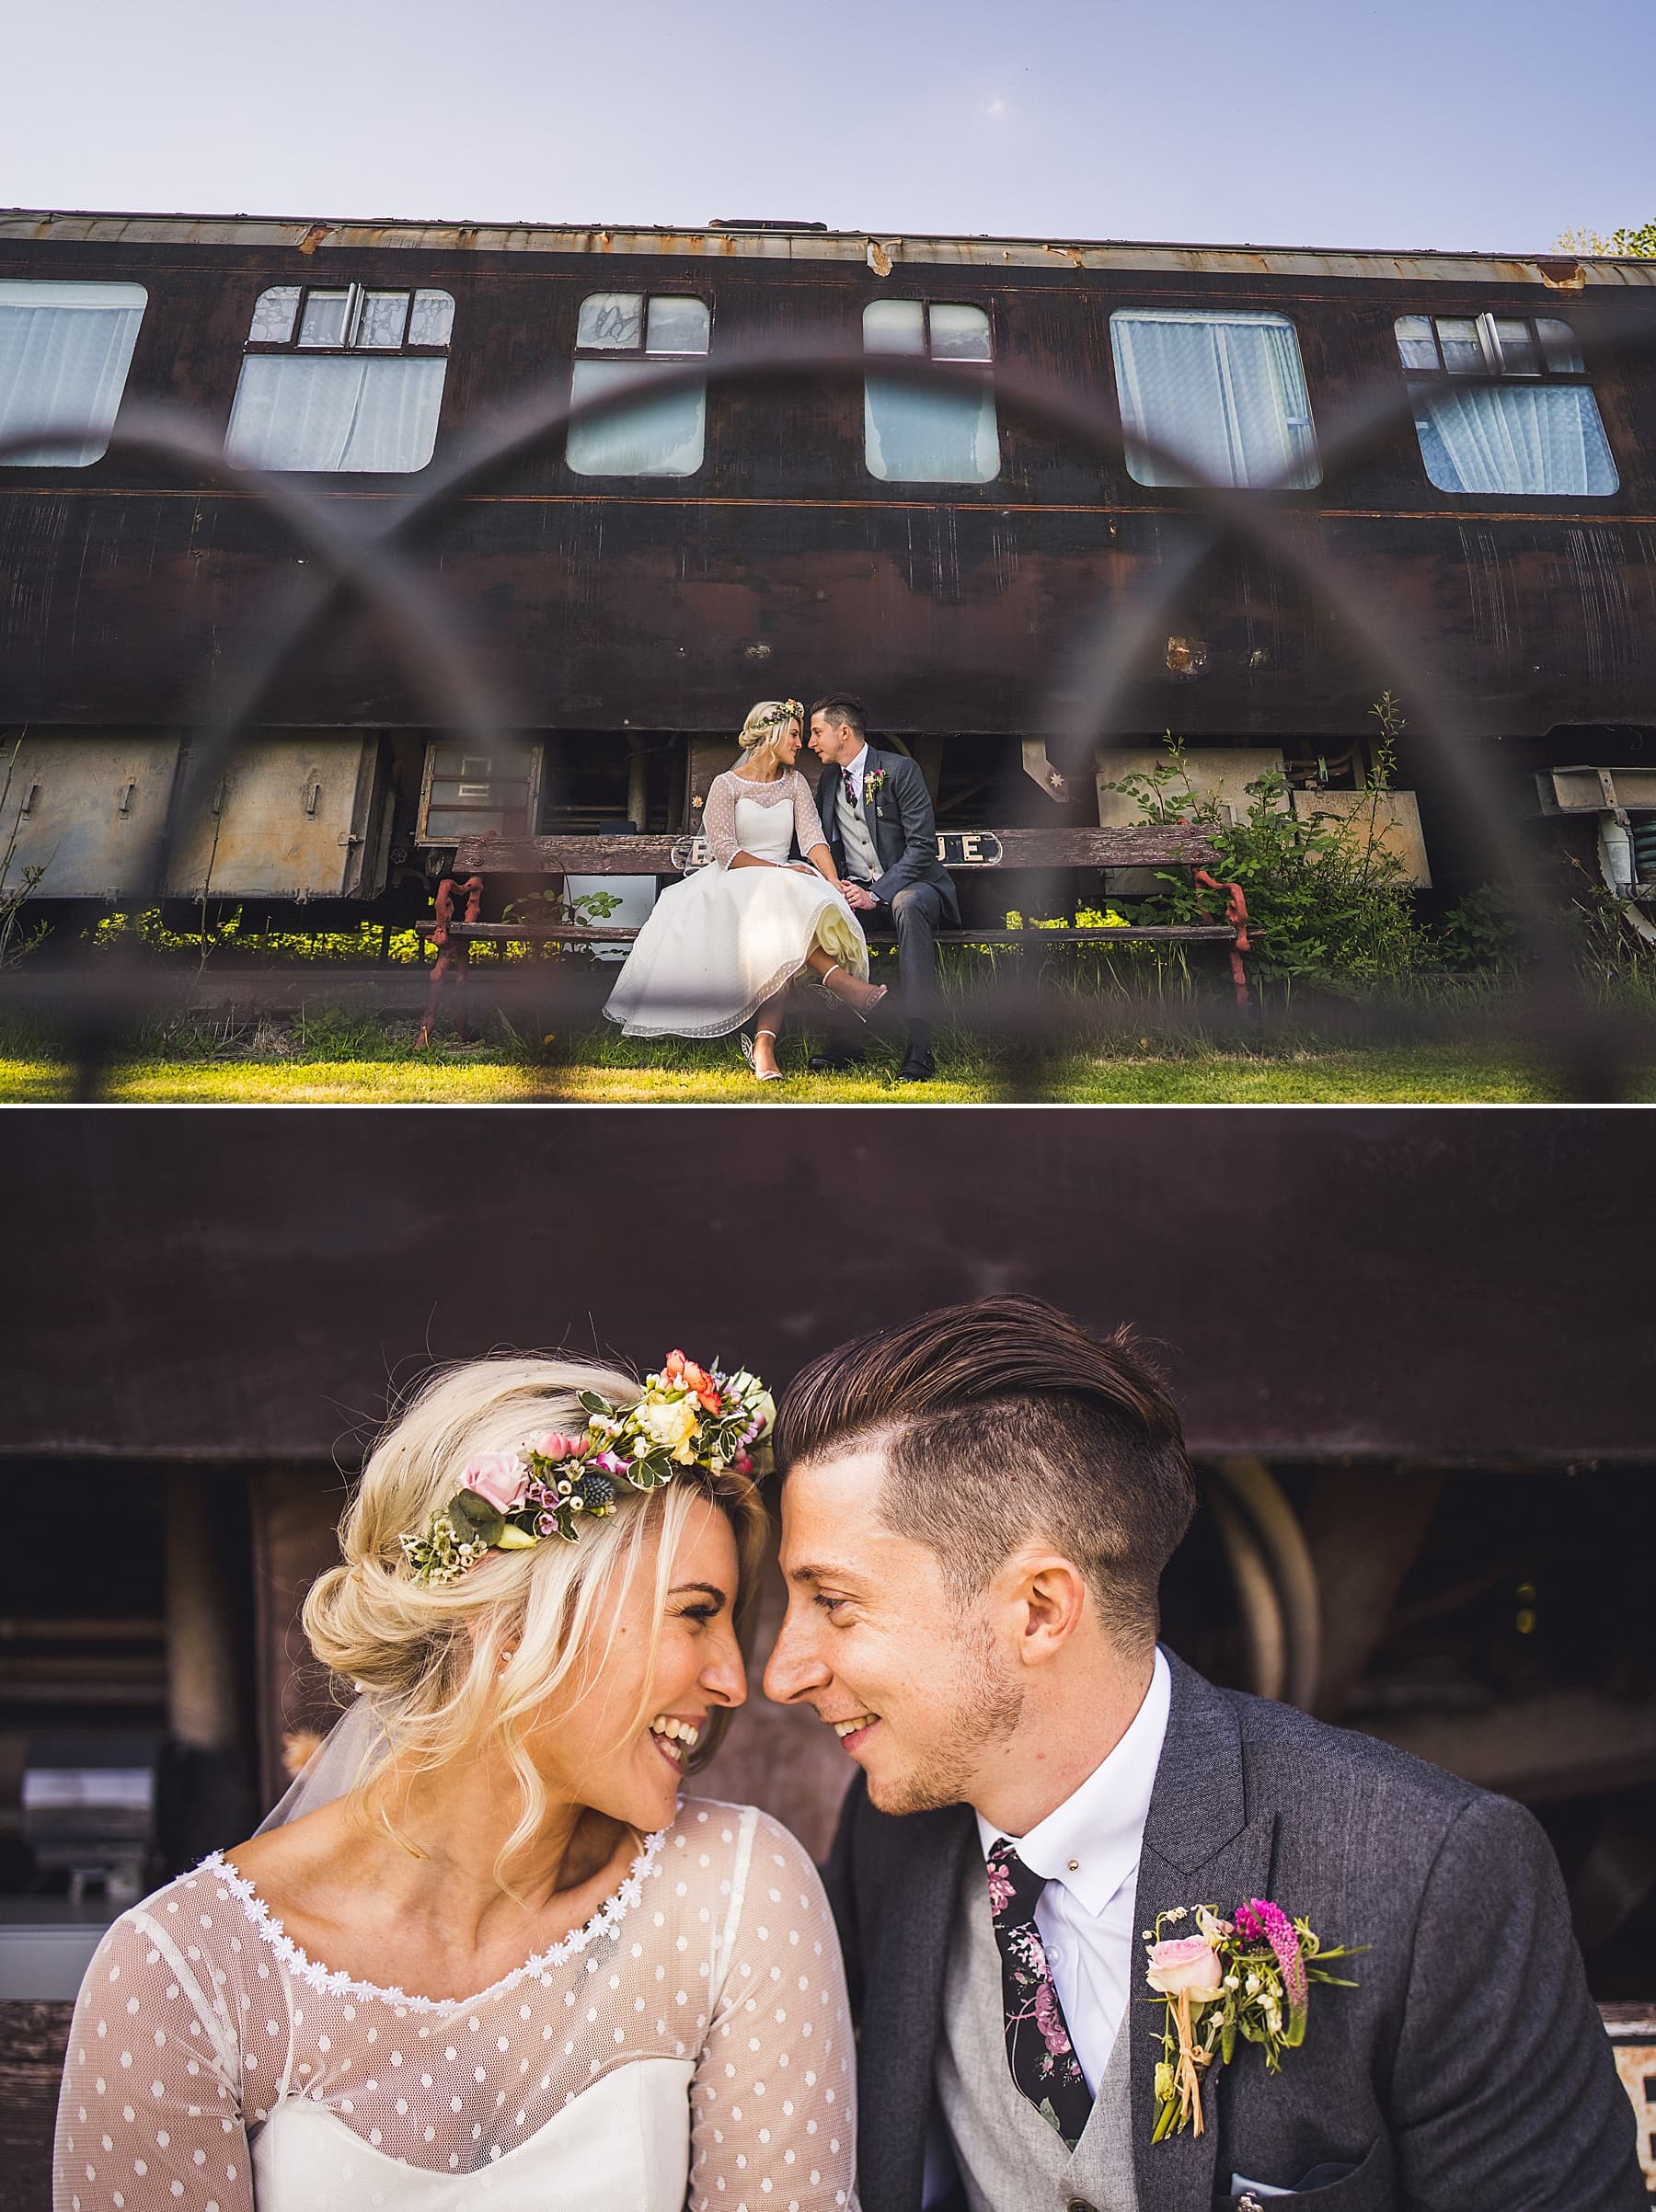 fawley hill wedding, henley-on-thames wedding photographer, festival wedding